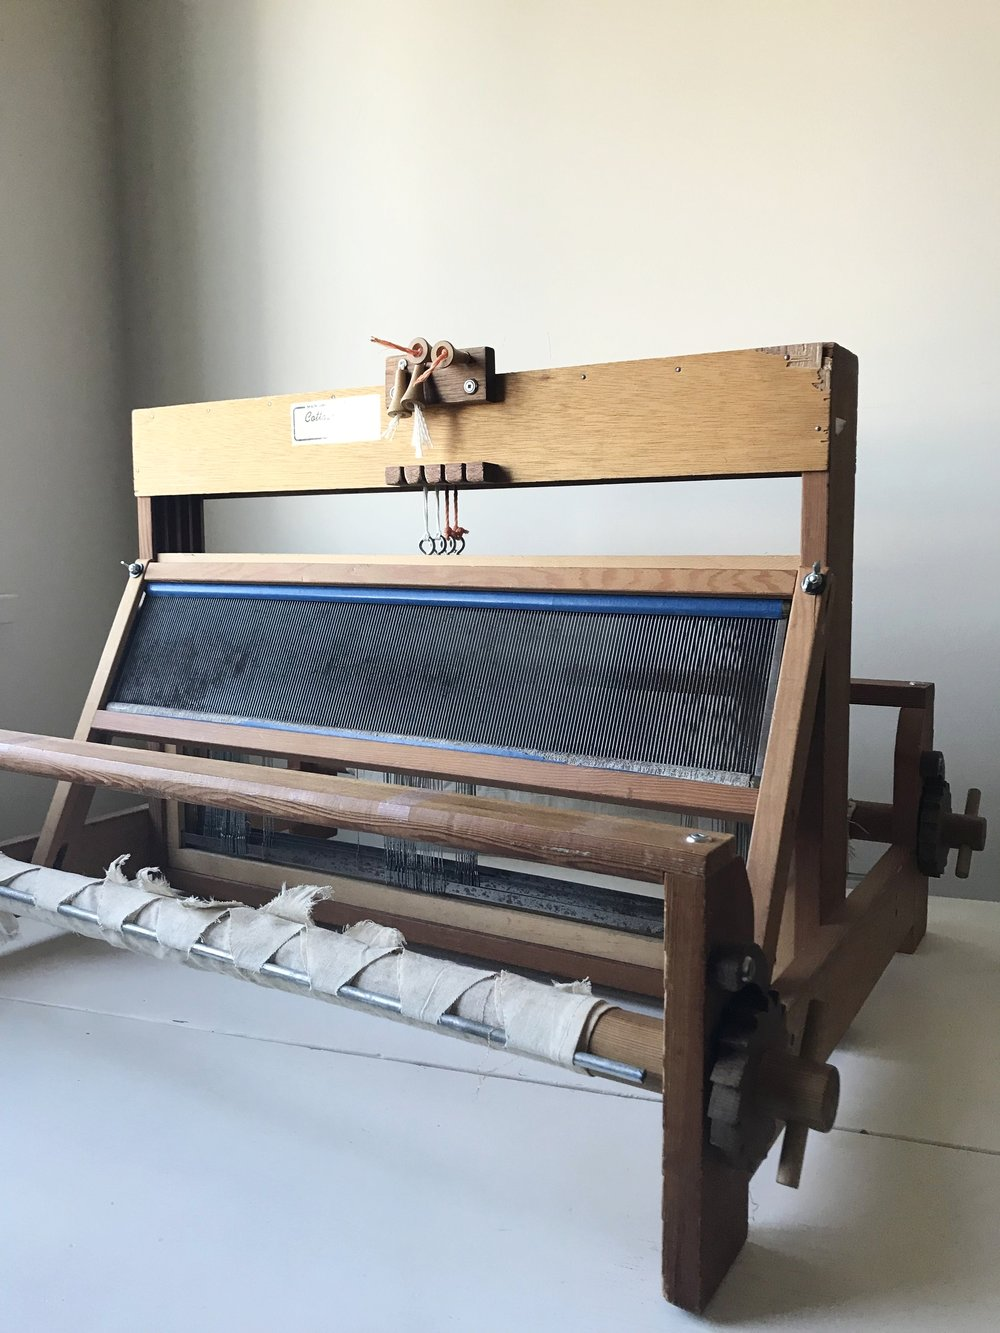 4-harness table-top loom